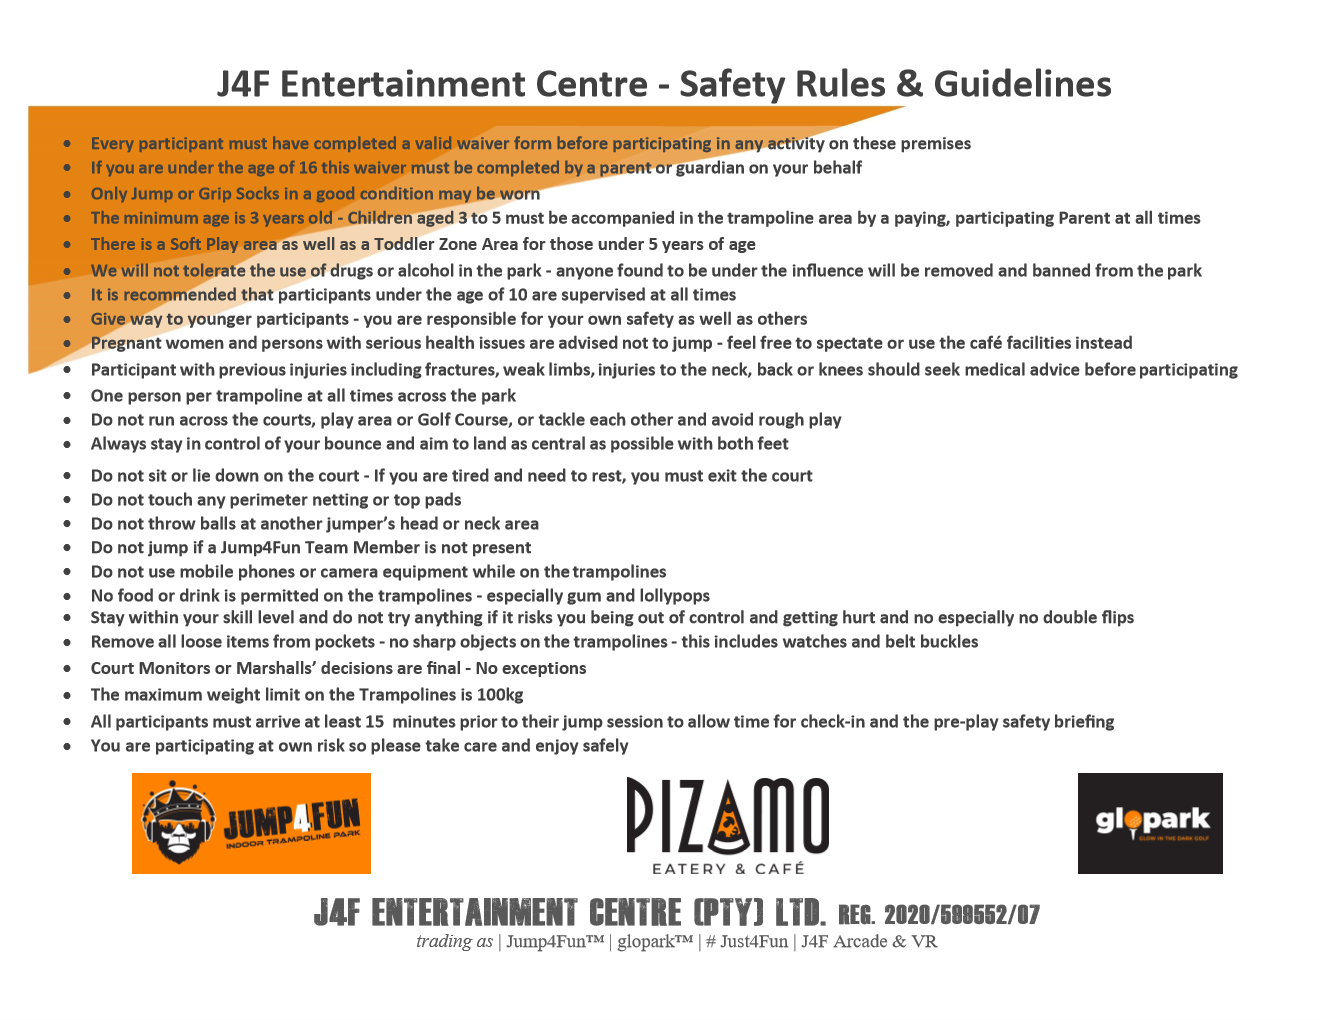 J4F Safety Signage picture 1